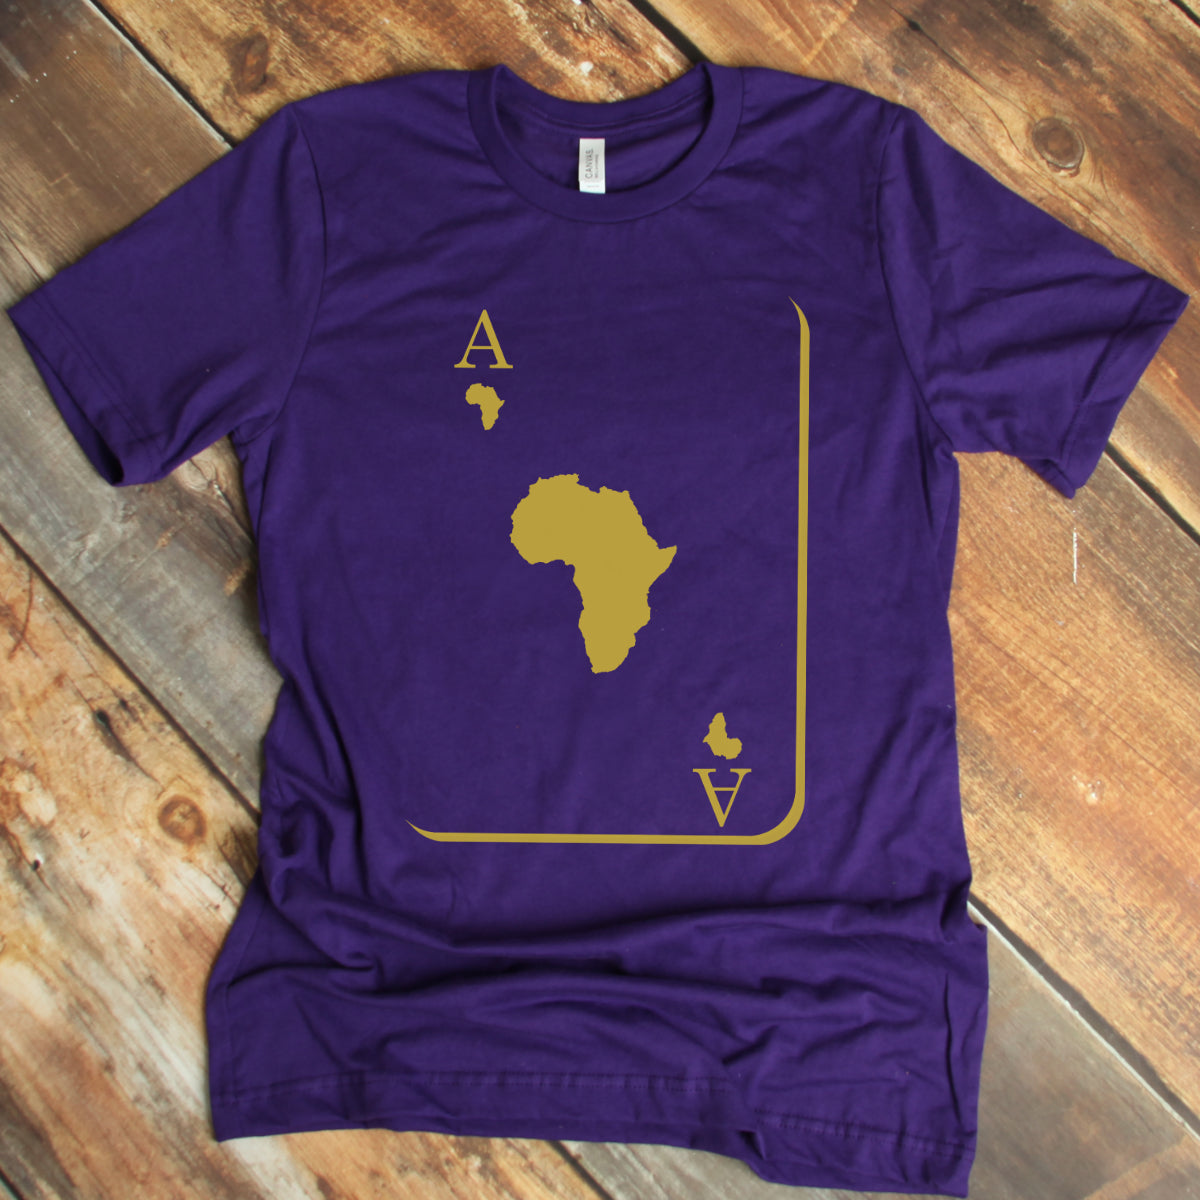 The Ace Omega Purple and Old Gold Tshirt